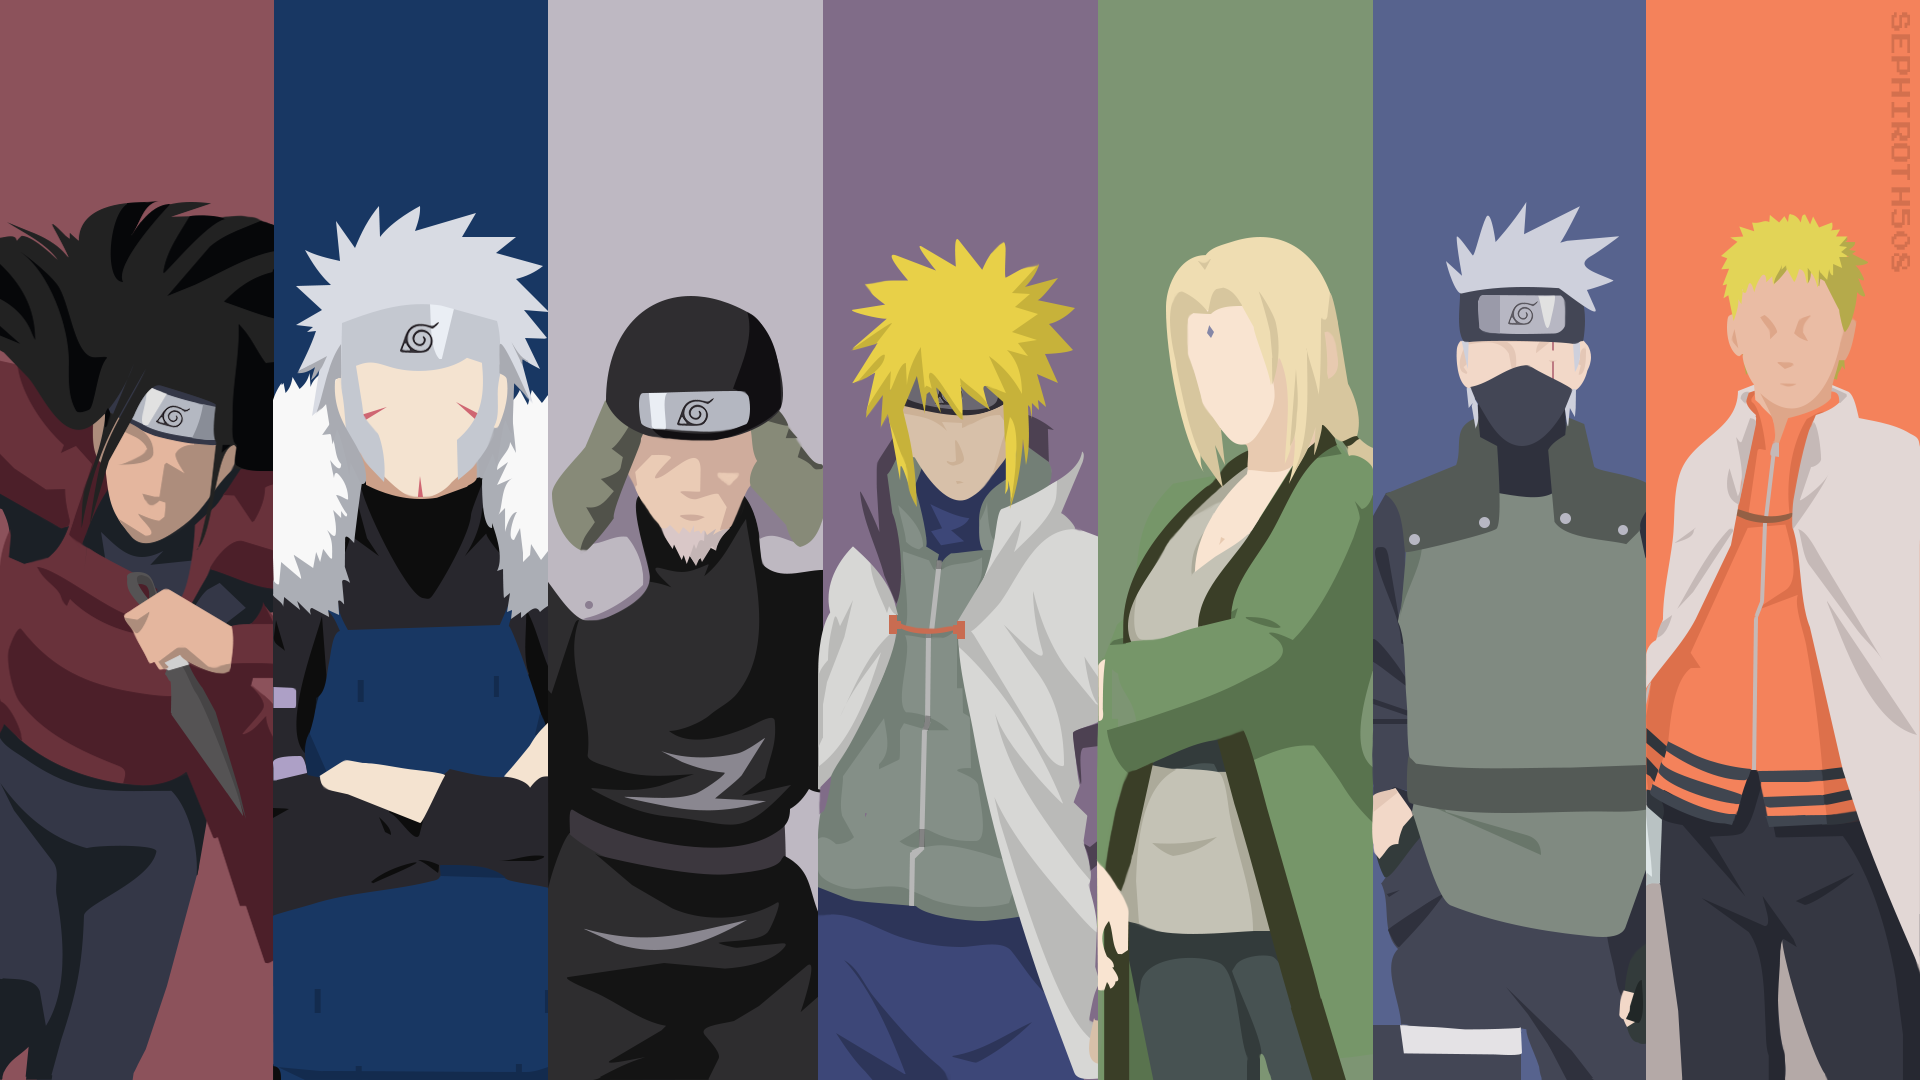 So who is the Weakest among the Hokage? Wallpaper naruto